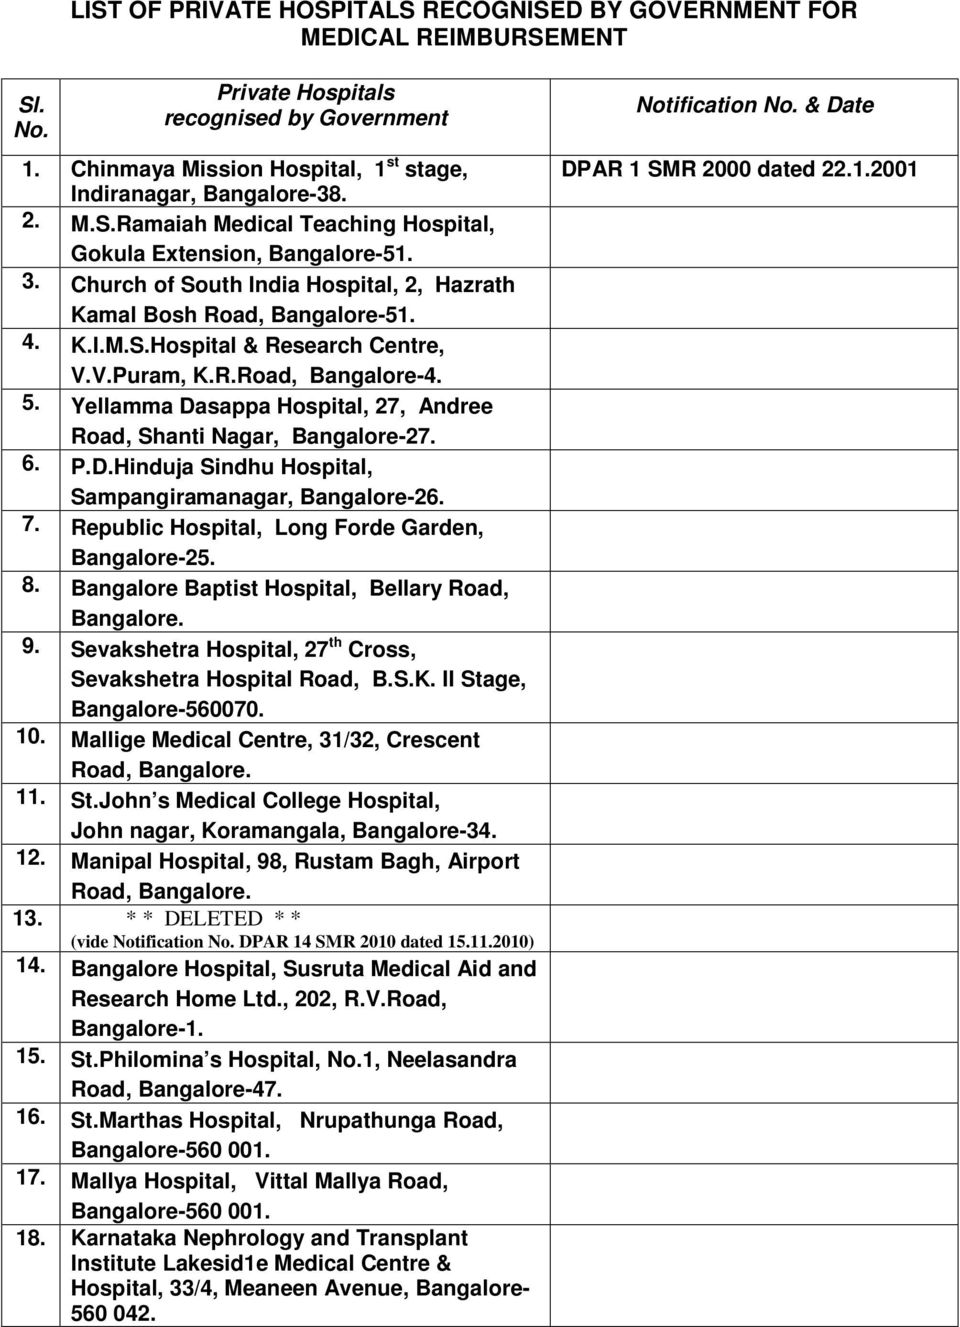 LIST OF PRIVATE HOSPITALS RECOGNISED BY GOVERNMENT FOR